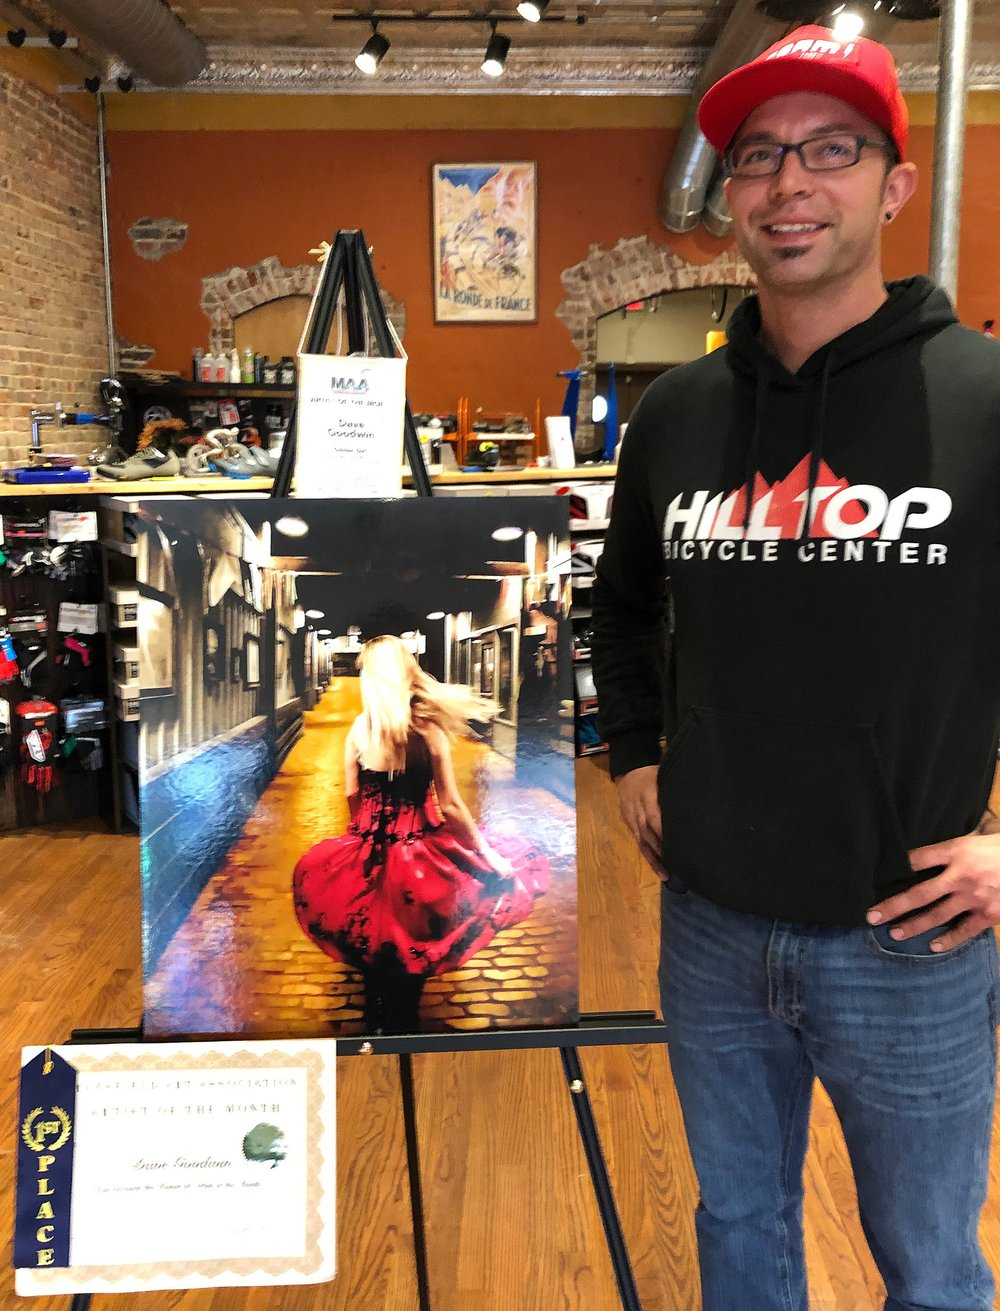 Many thanks go out to owner Jeff Delavega of Hilltop Bicycle Center for displaying winning MAA art in his business! His shop is located right on Main Street in Historic Downtown Mansfield.